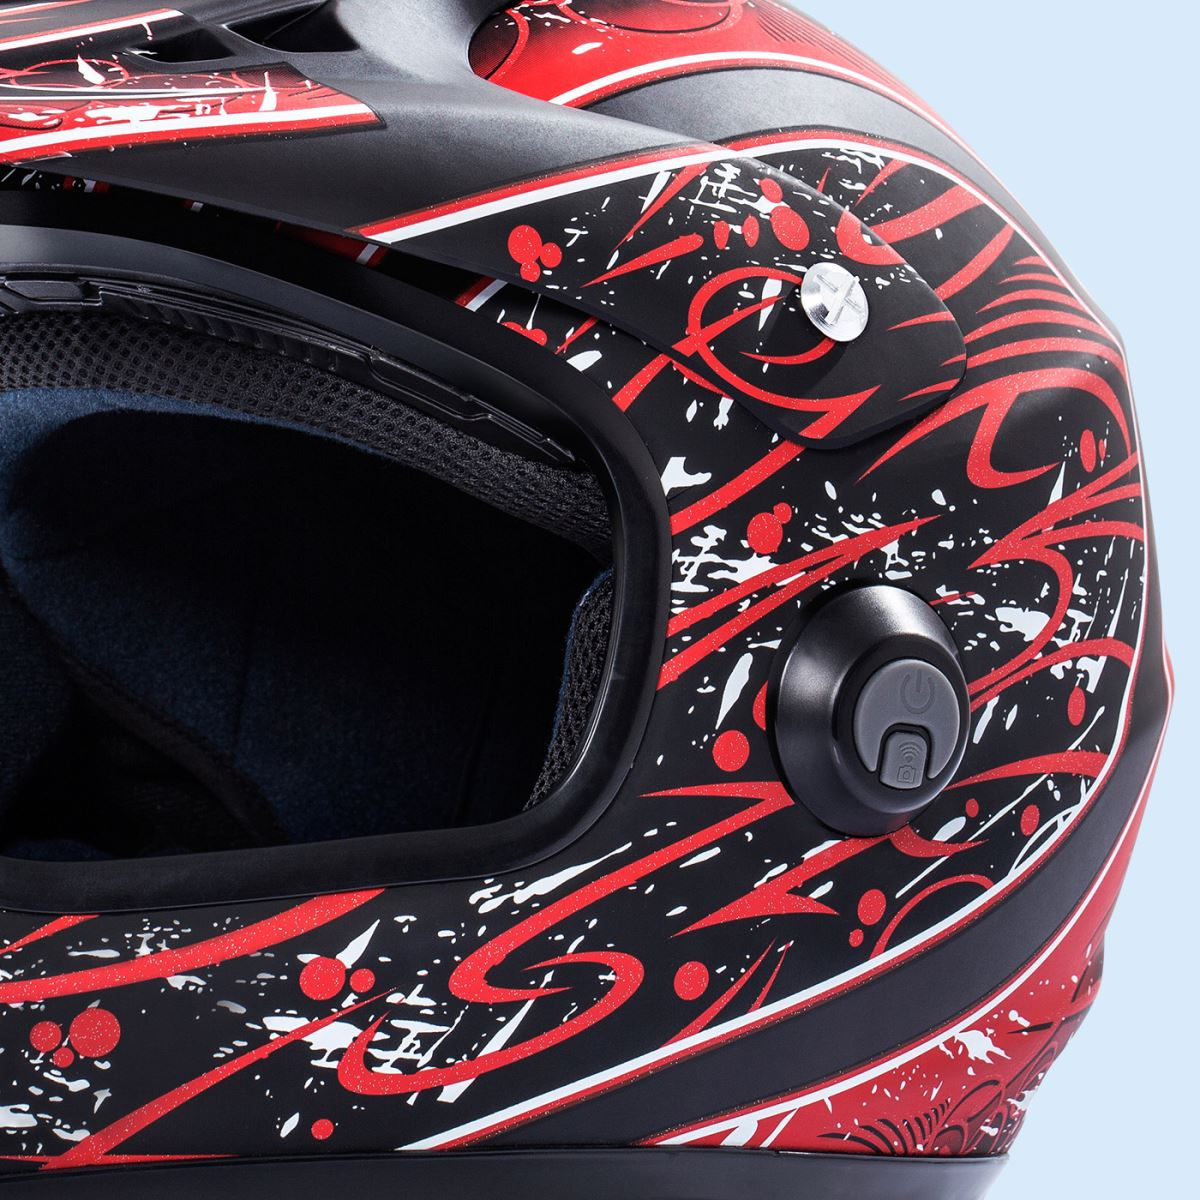 intelligent racing helmet